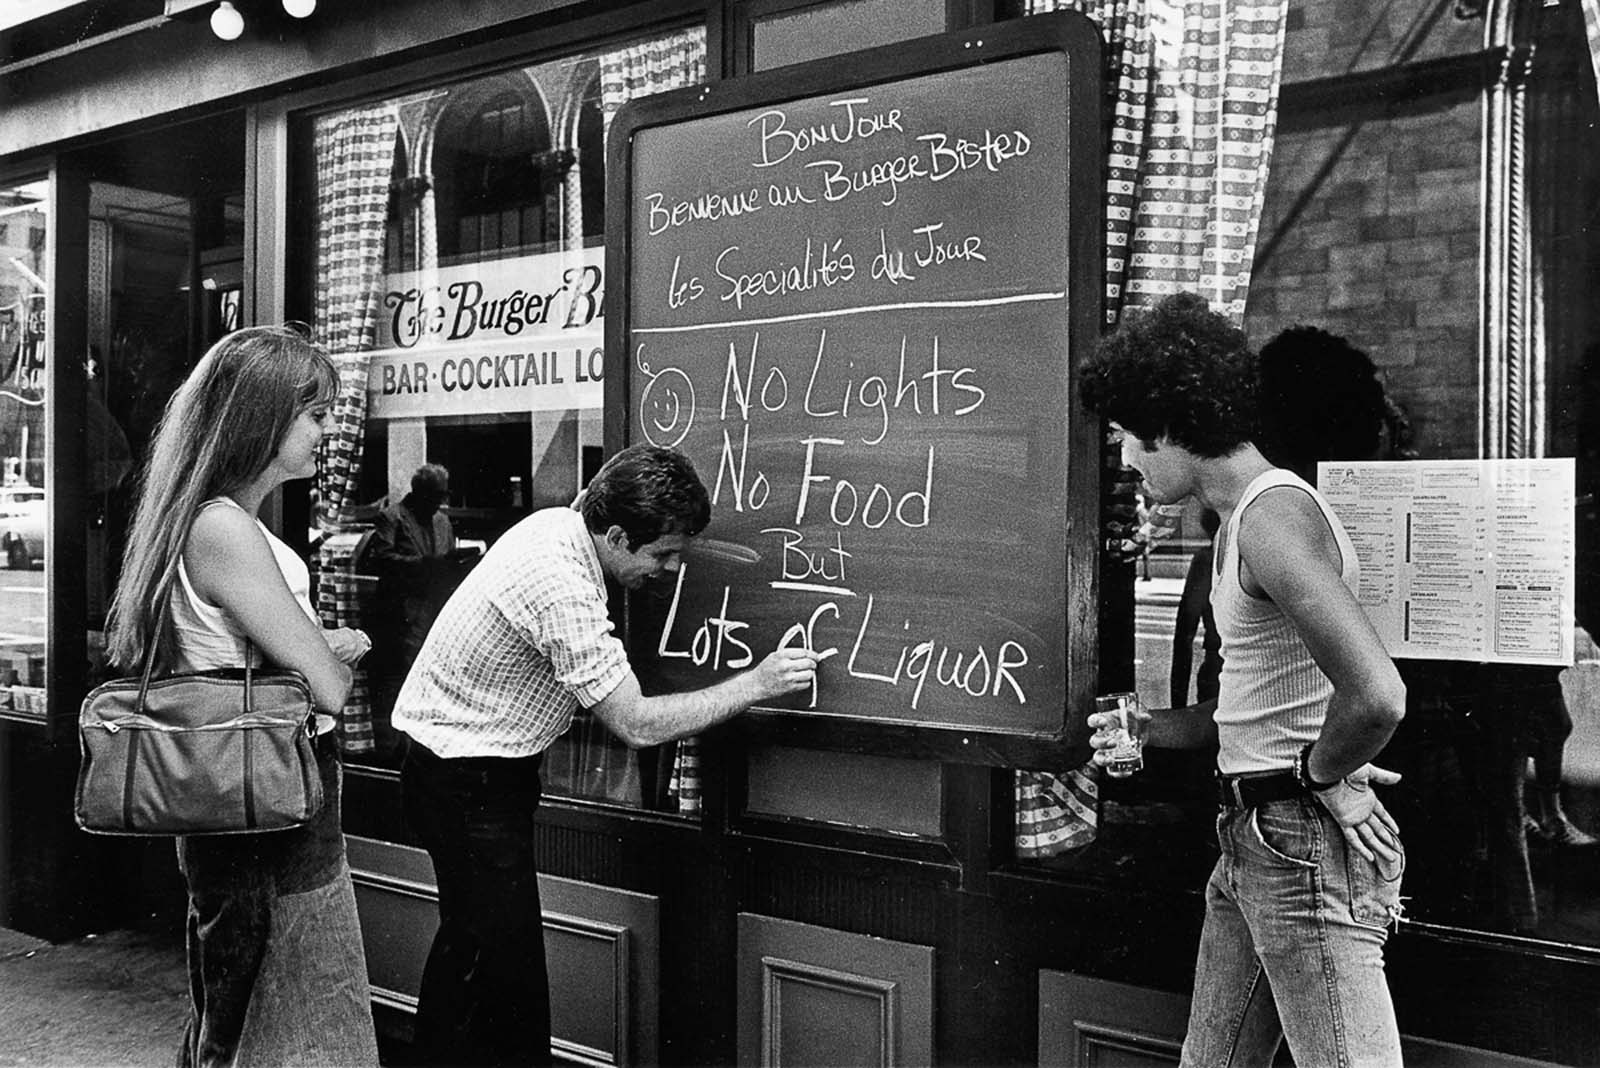 A restaurant owner updates the specials of the day during the blackout.